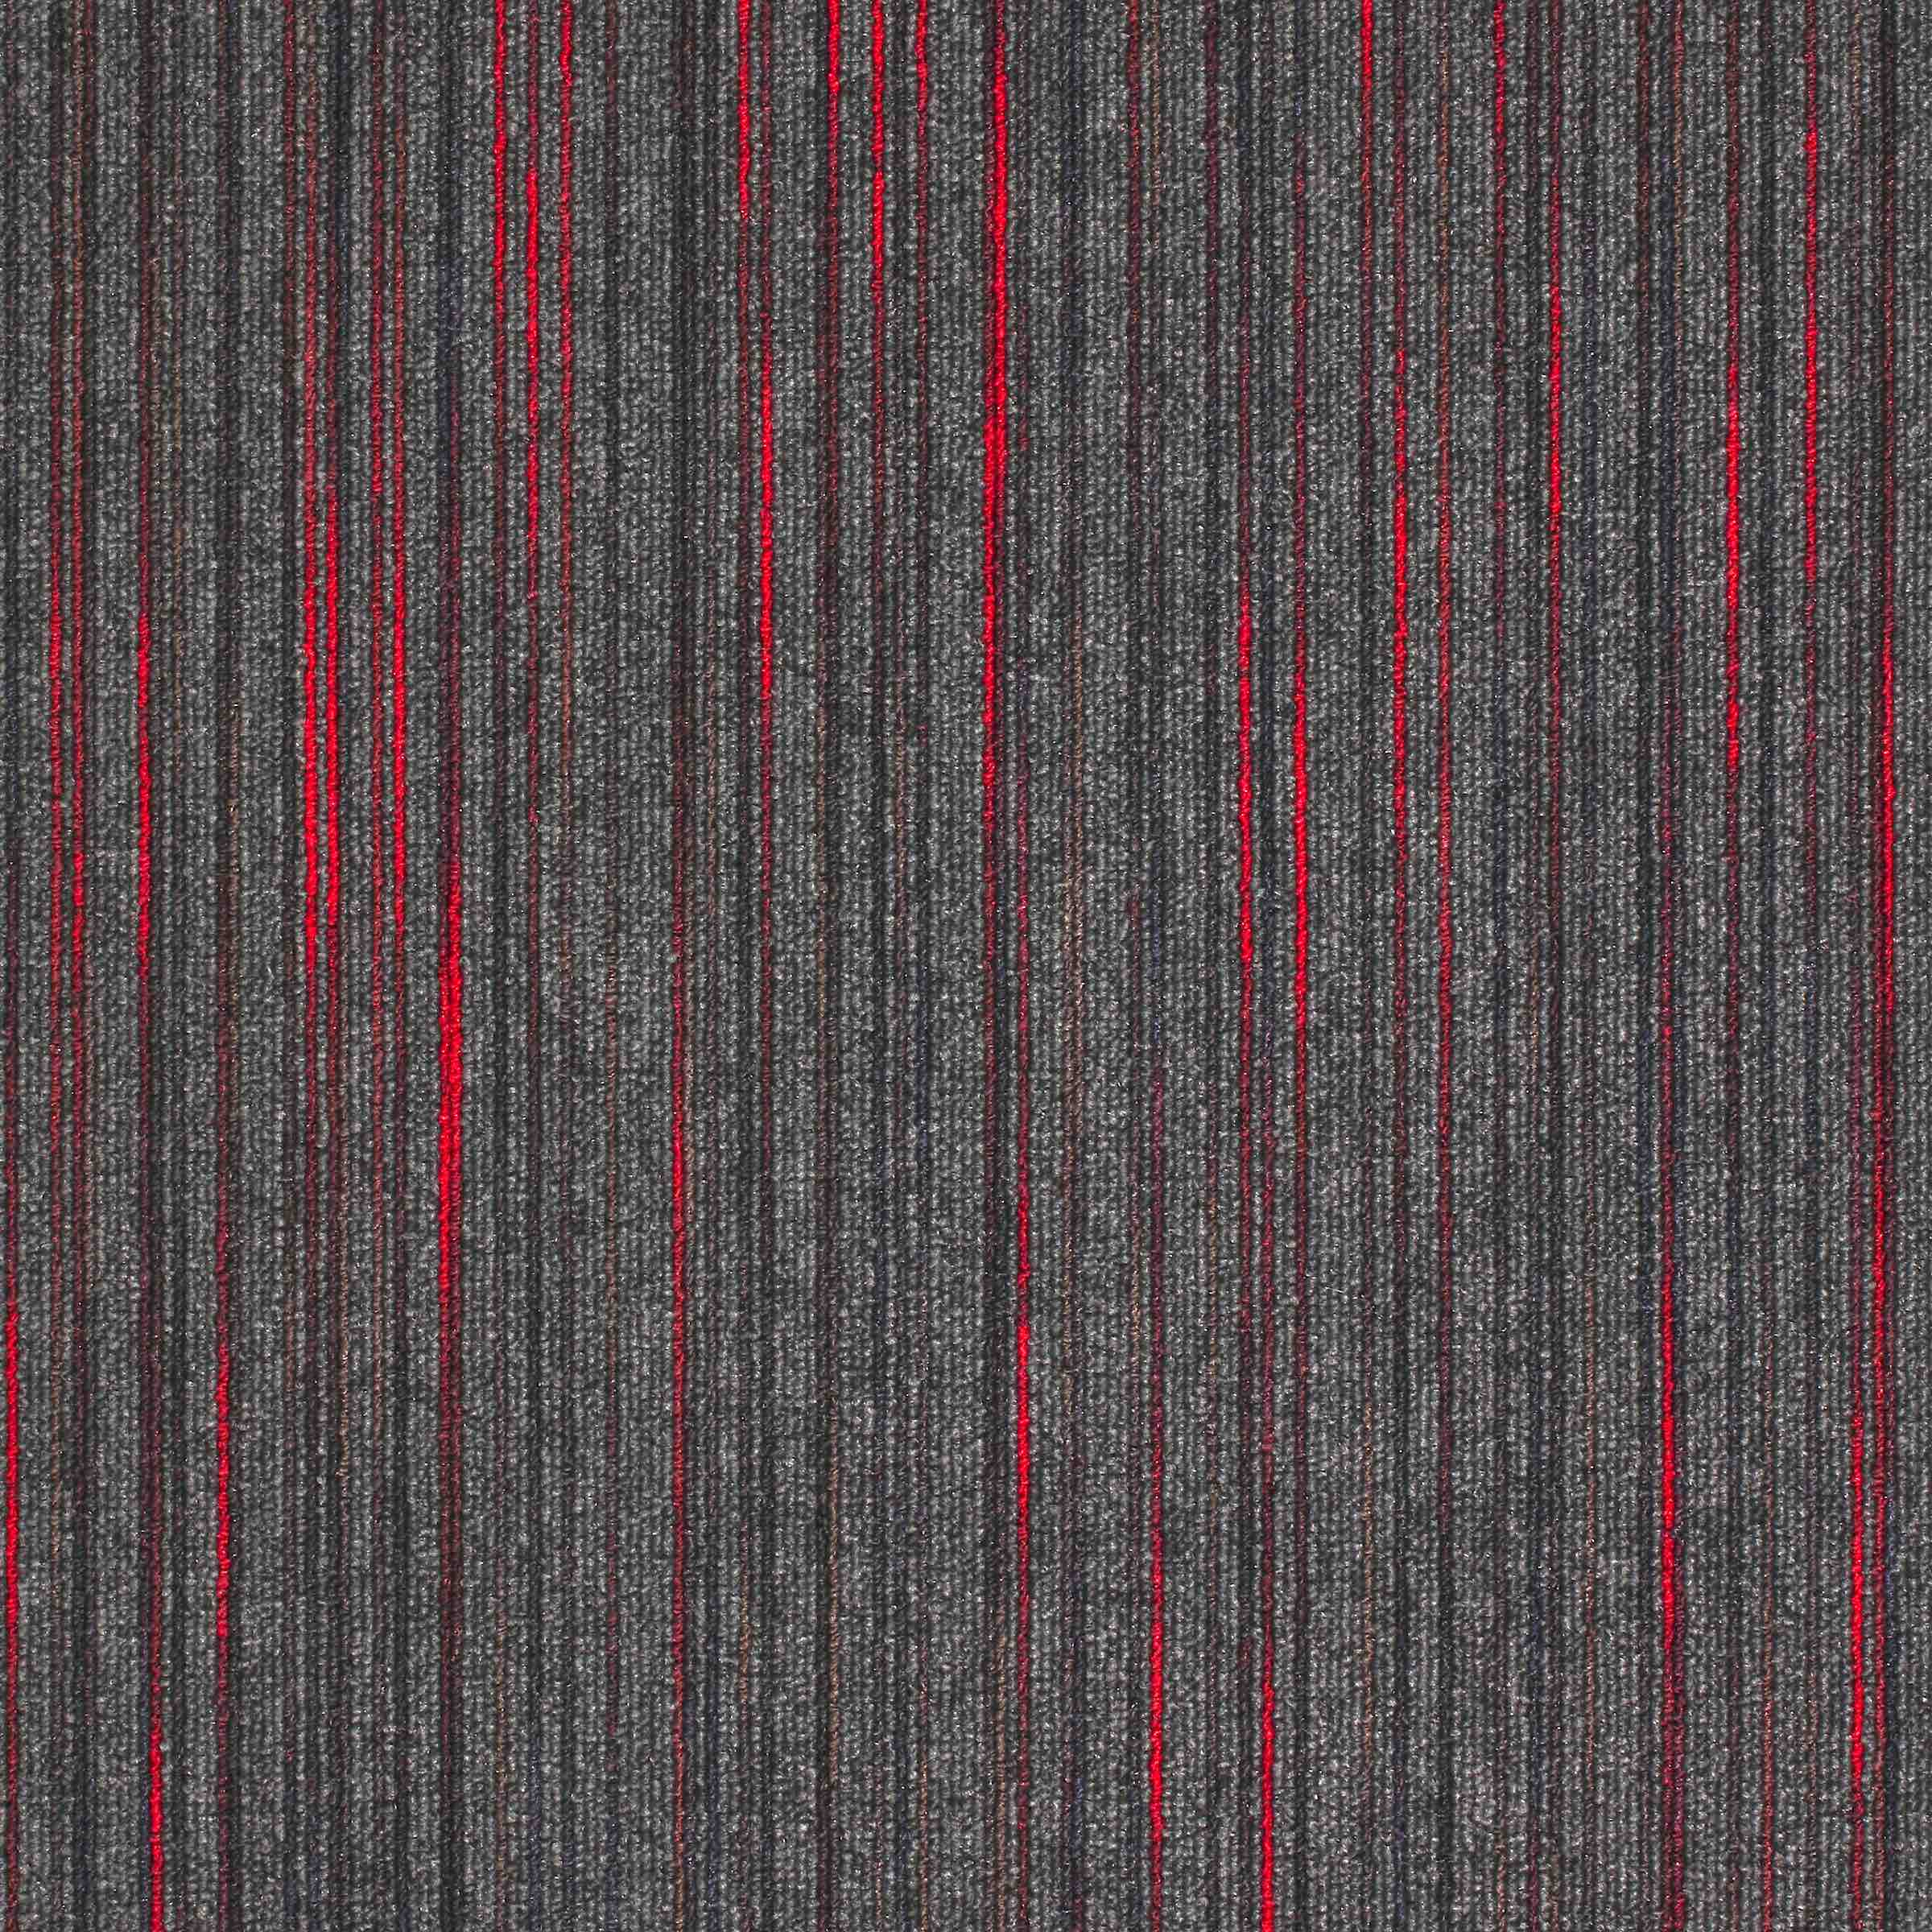 Strobe | Blaze, 2604 | Paragon Carpet Tiles | Commercial Carpet Tiles